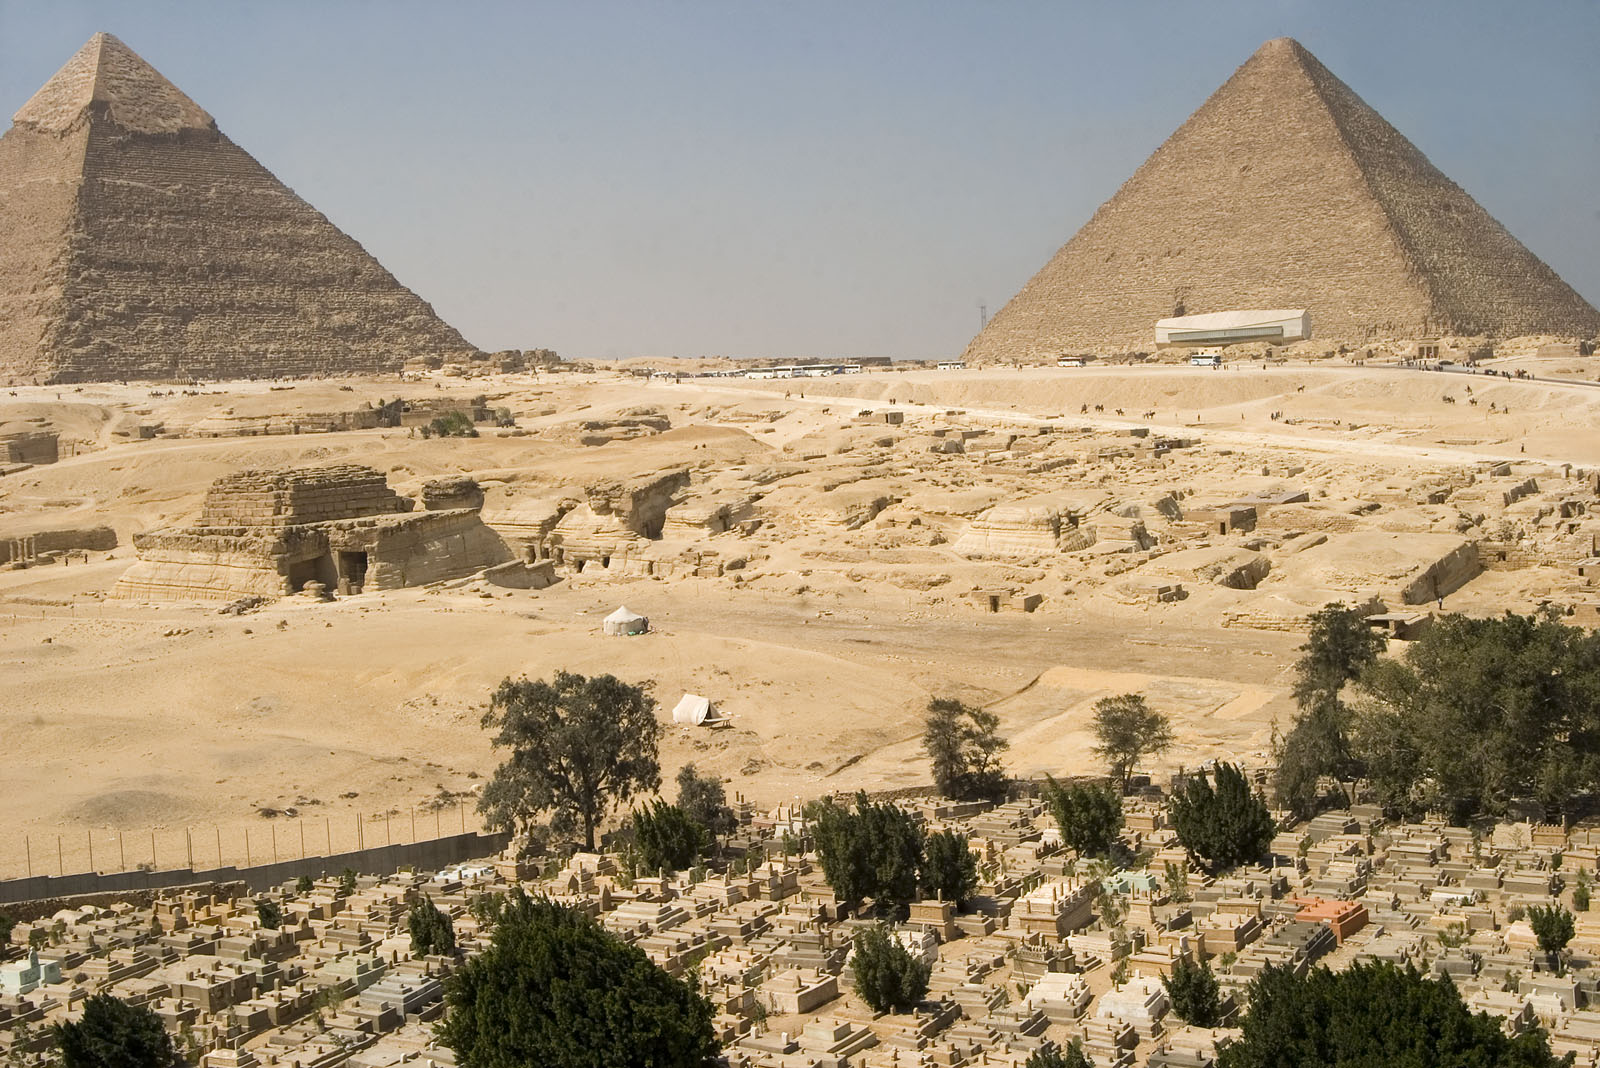 General view: Site: Giza; View: G 8400, Khufu pyramid, Khafre pyramid